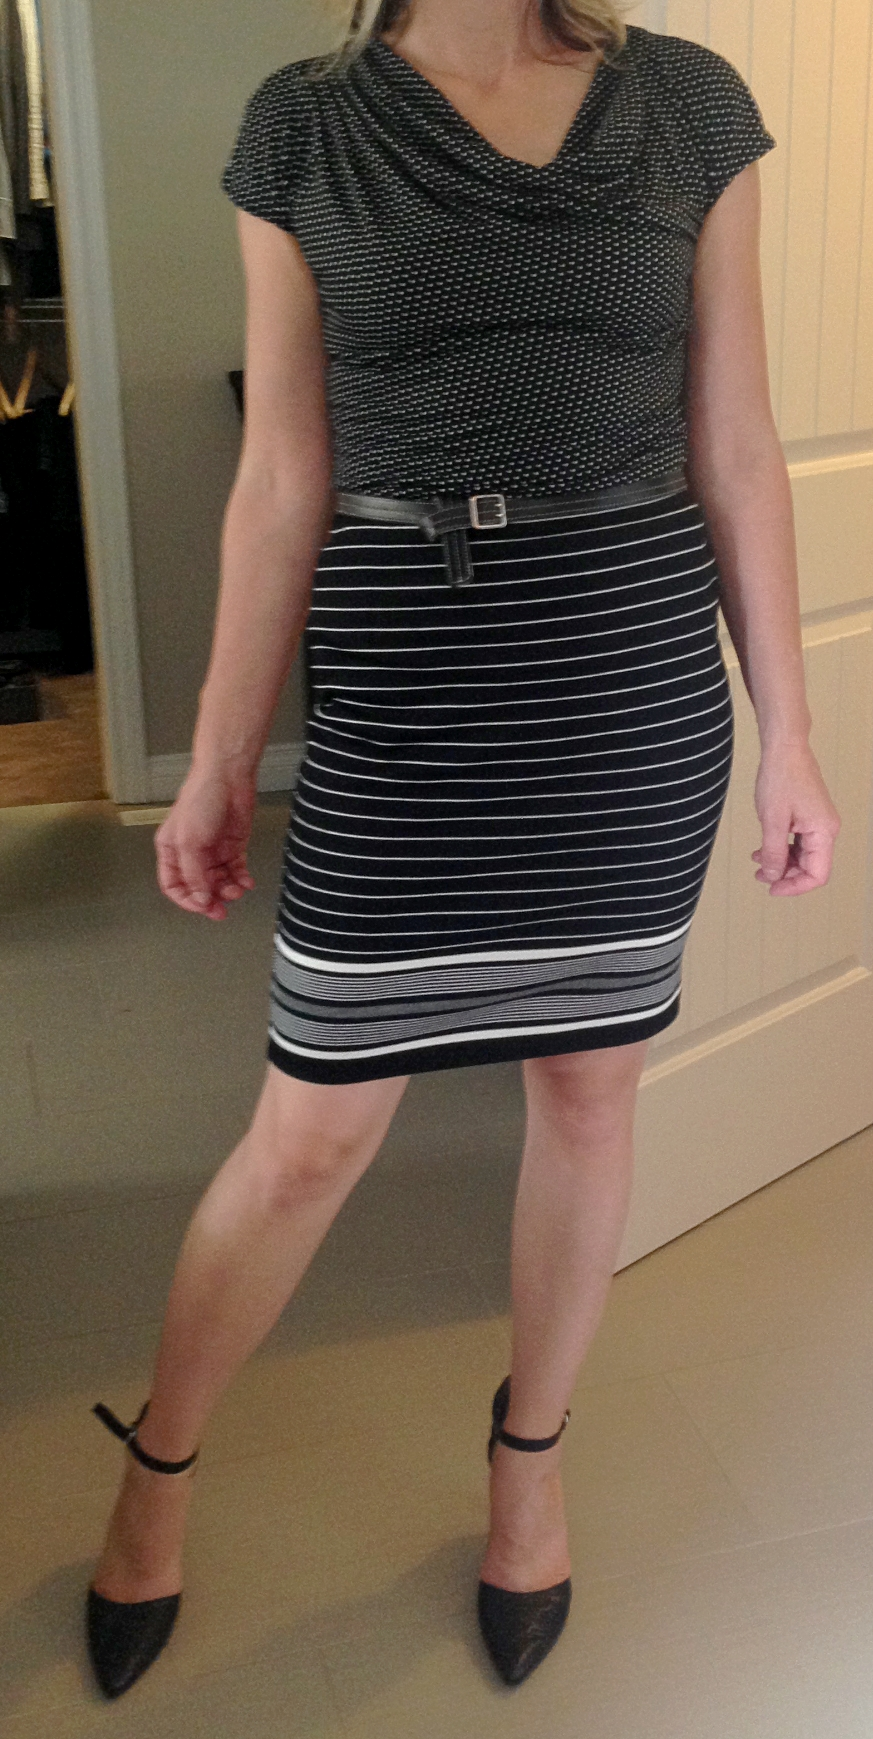 She did have a striped skirt that she typically wears with a black top.  Classic patterns pair well - stripes and florals, stripes and polka dots... Again, you can use a belt as a transition between patterns.